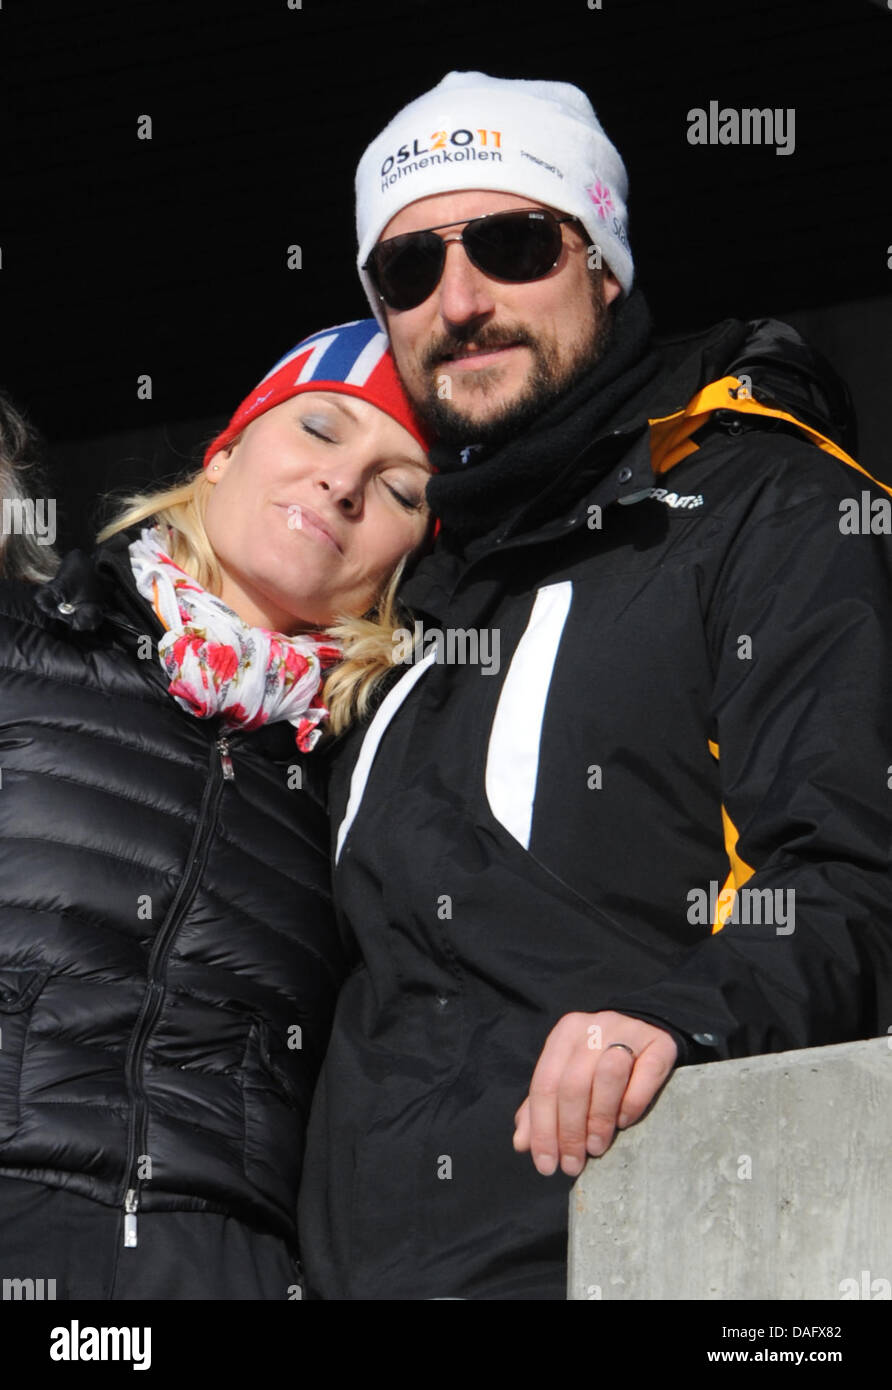 Crown Princess Mette-Marit of Norway and Crown Prince Haakon of Norway seen in the audience during the Men's - Stock Image